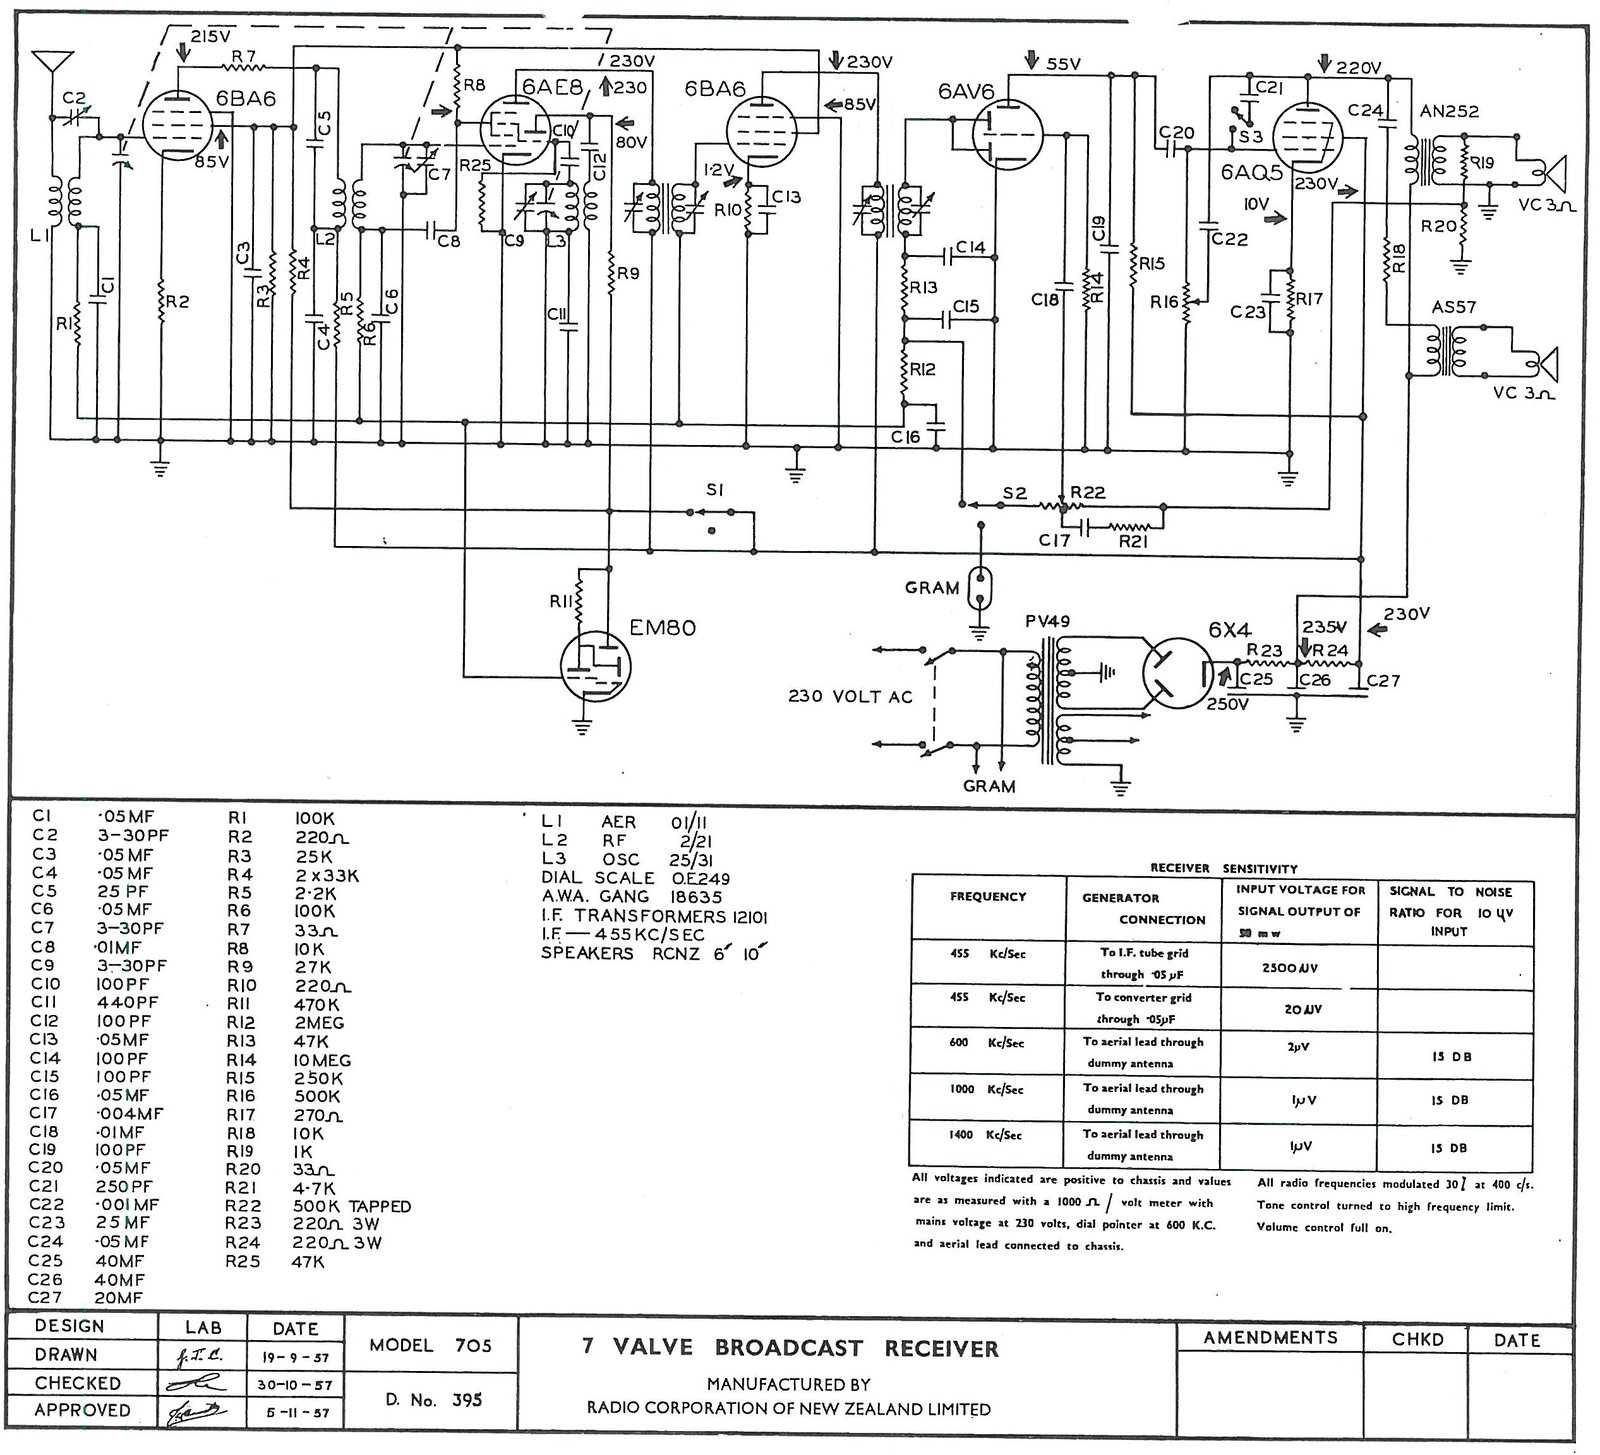 1957 Columbus model 705 Schematic